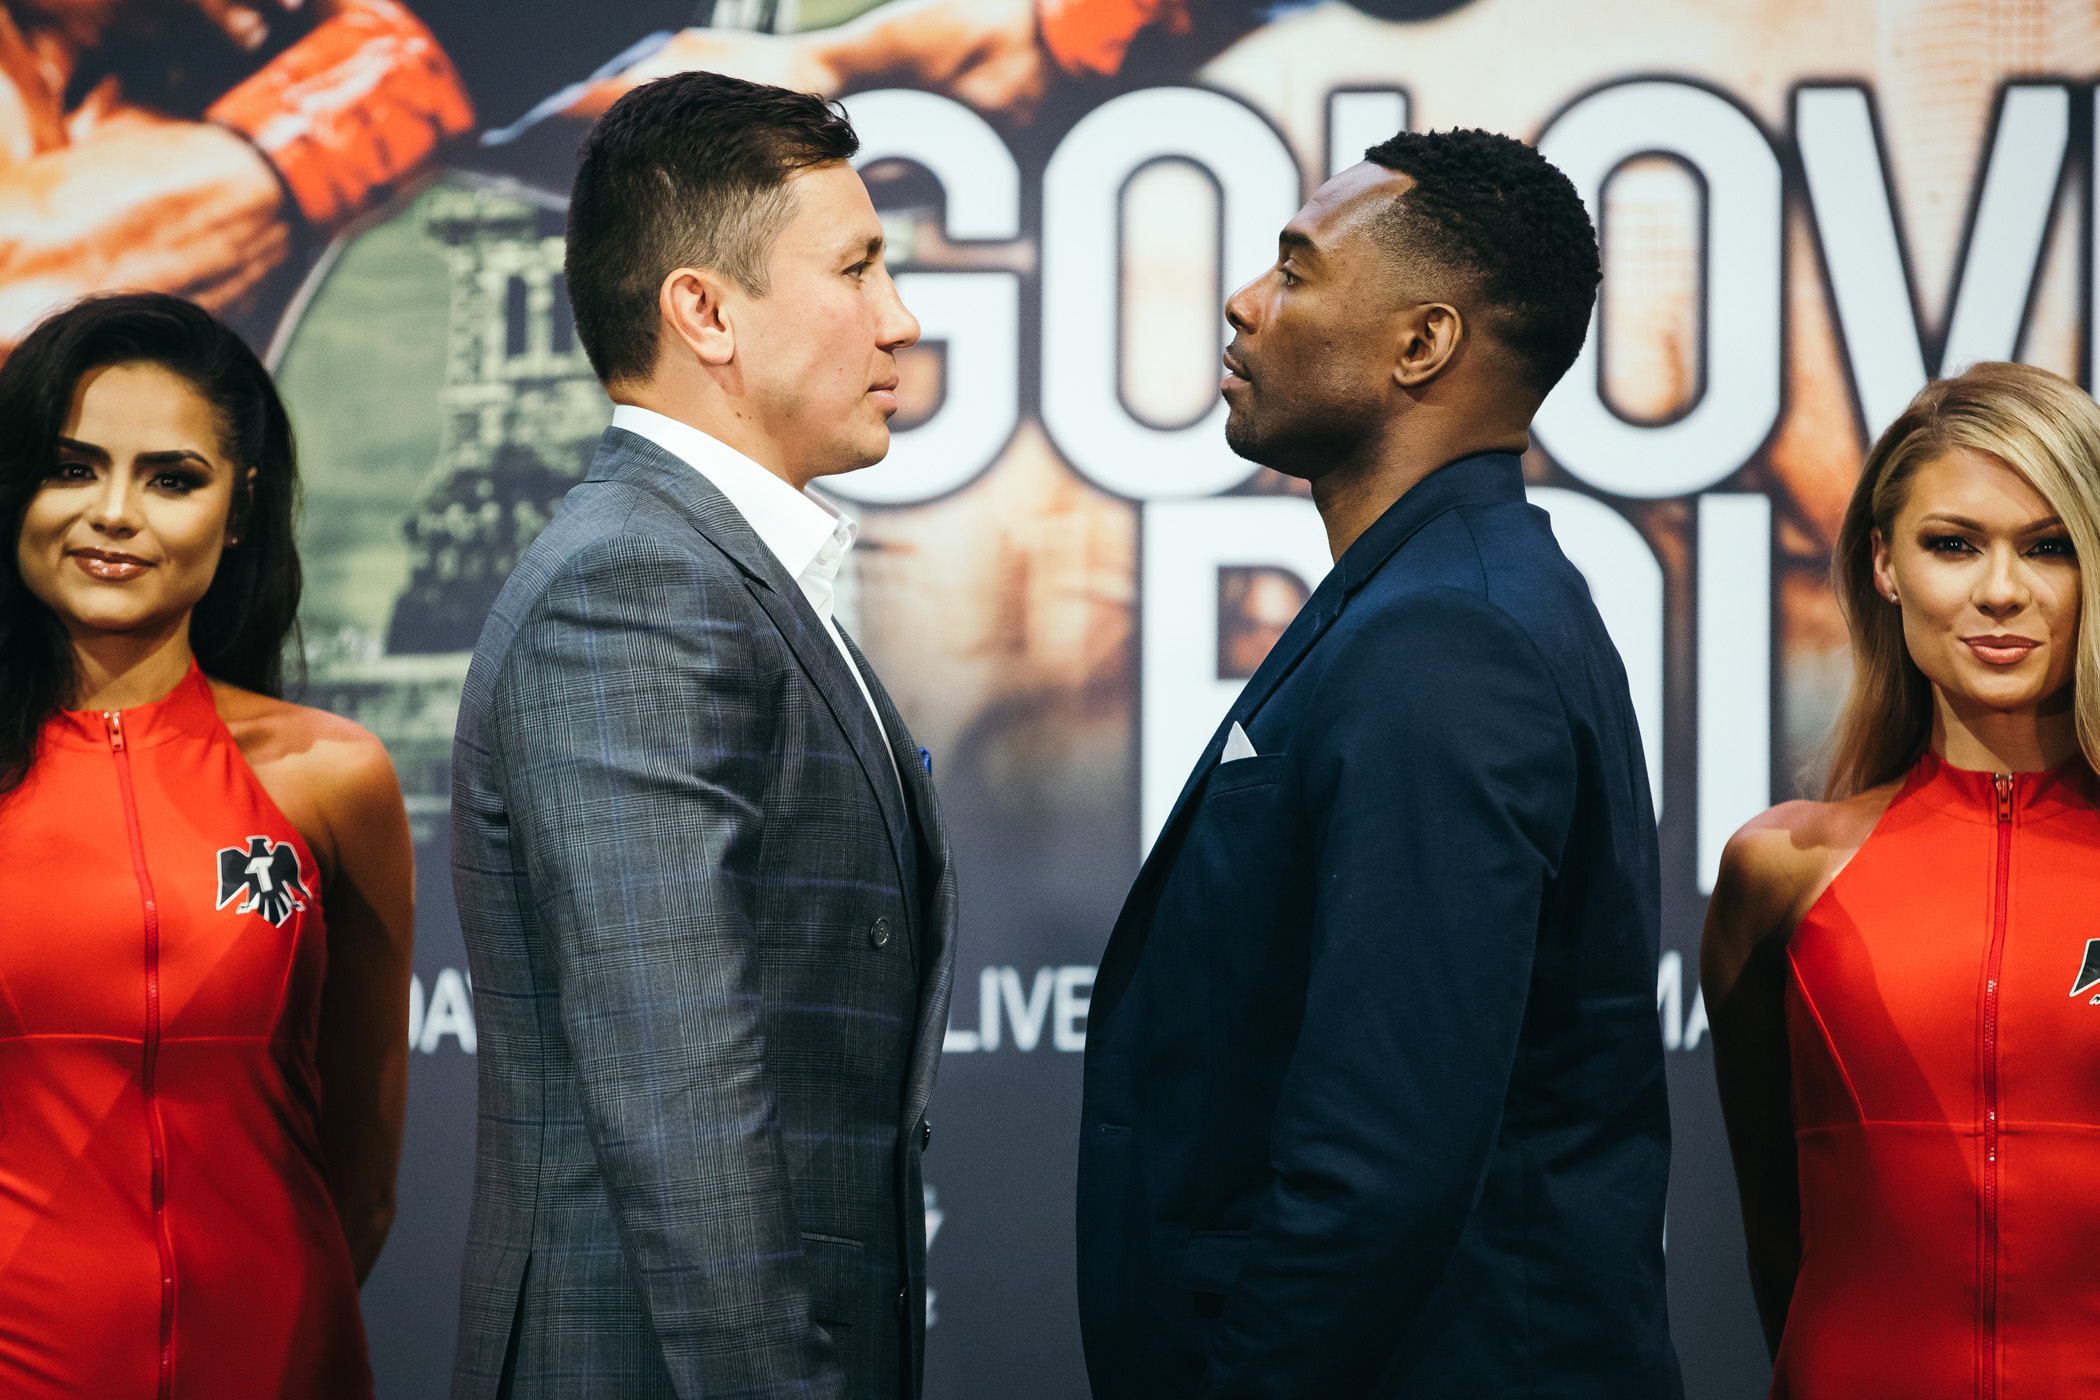 ggg rolls press 0026 - Press Conf Quotes: Gennady Golovkin vs Steve Rolls Announced